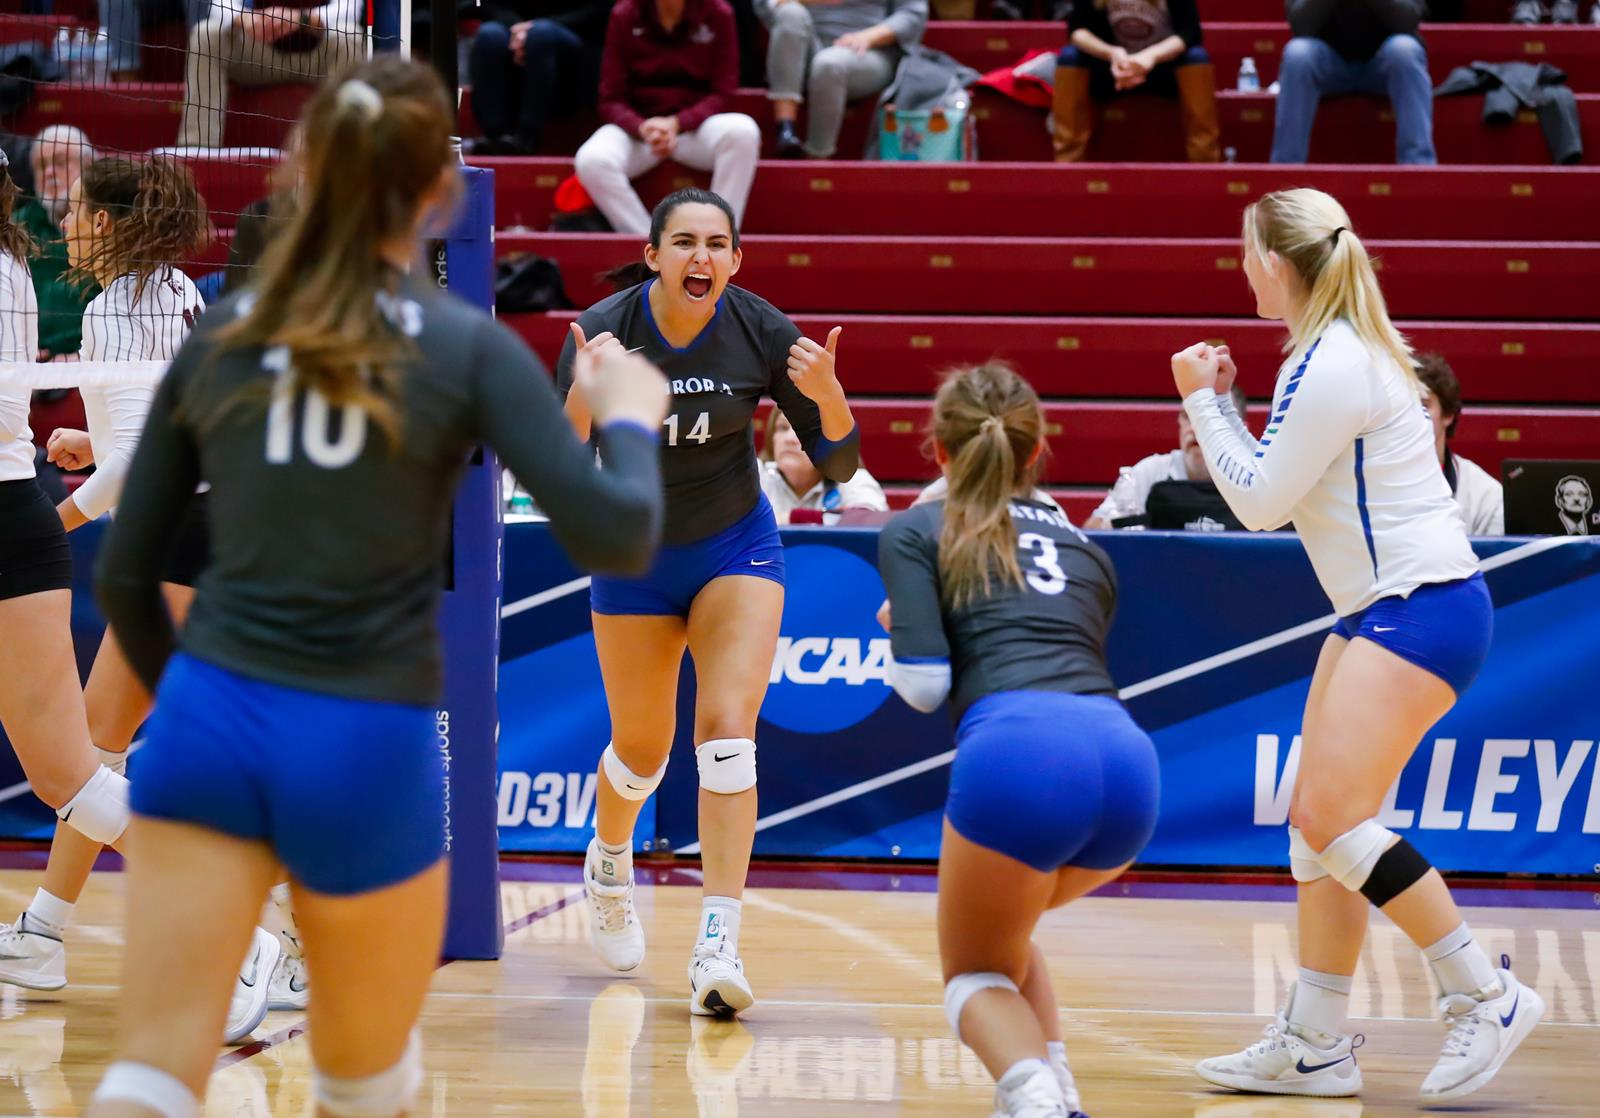 Aurora University advanced to the second round of the NCAA Division III Women's Volleyball Championship with a sweep of Trinity (Texas) (Photo credit: Steve Woltmann)